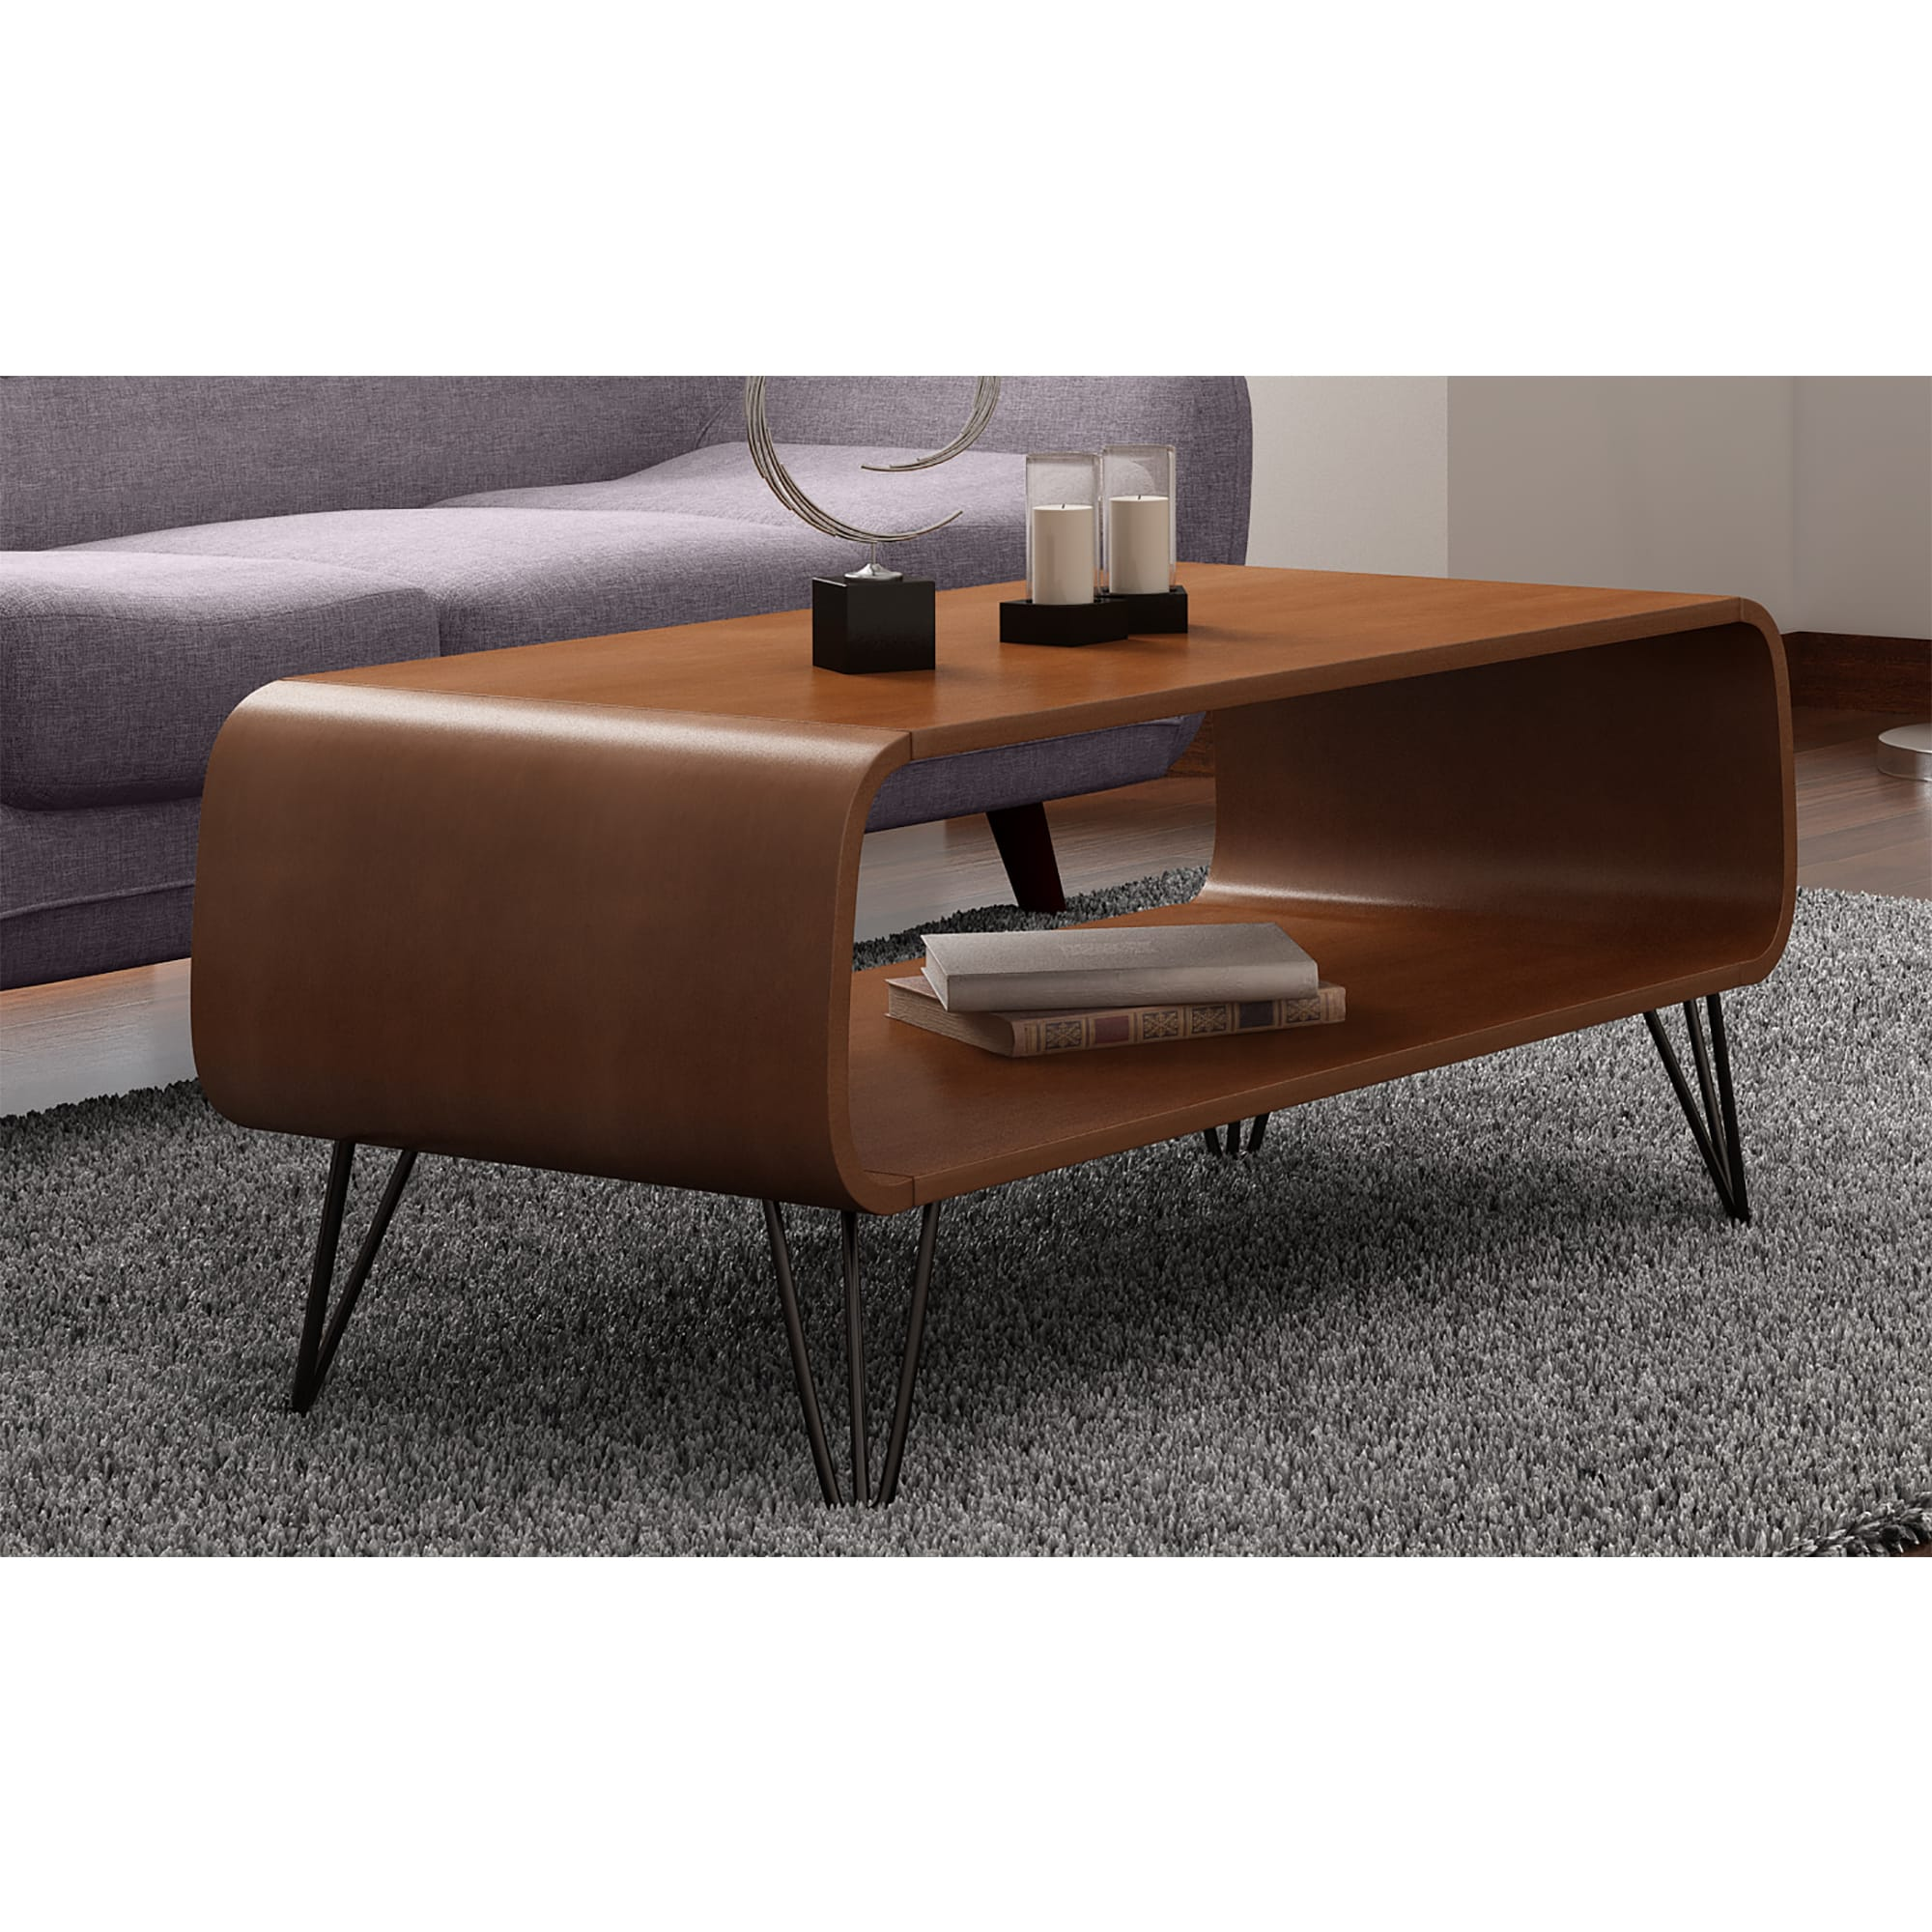 Low Mid Century Coffee Table For Living Room With Storage